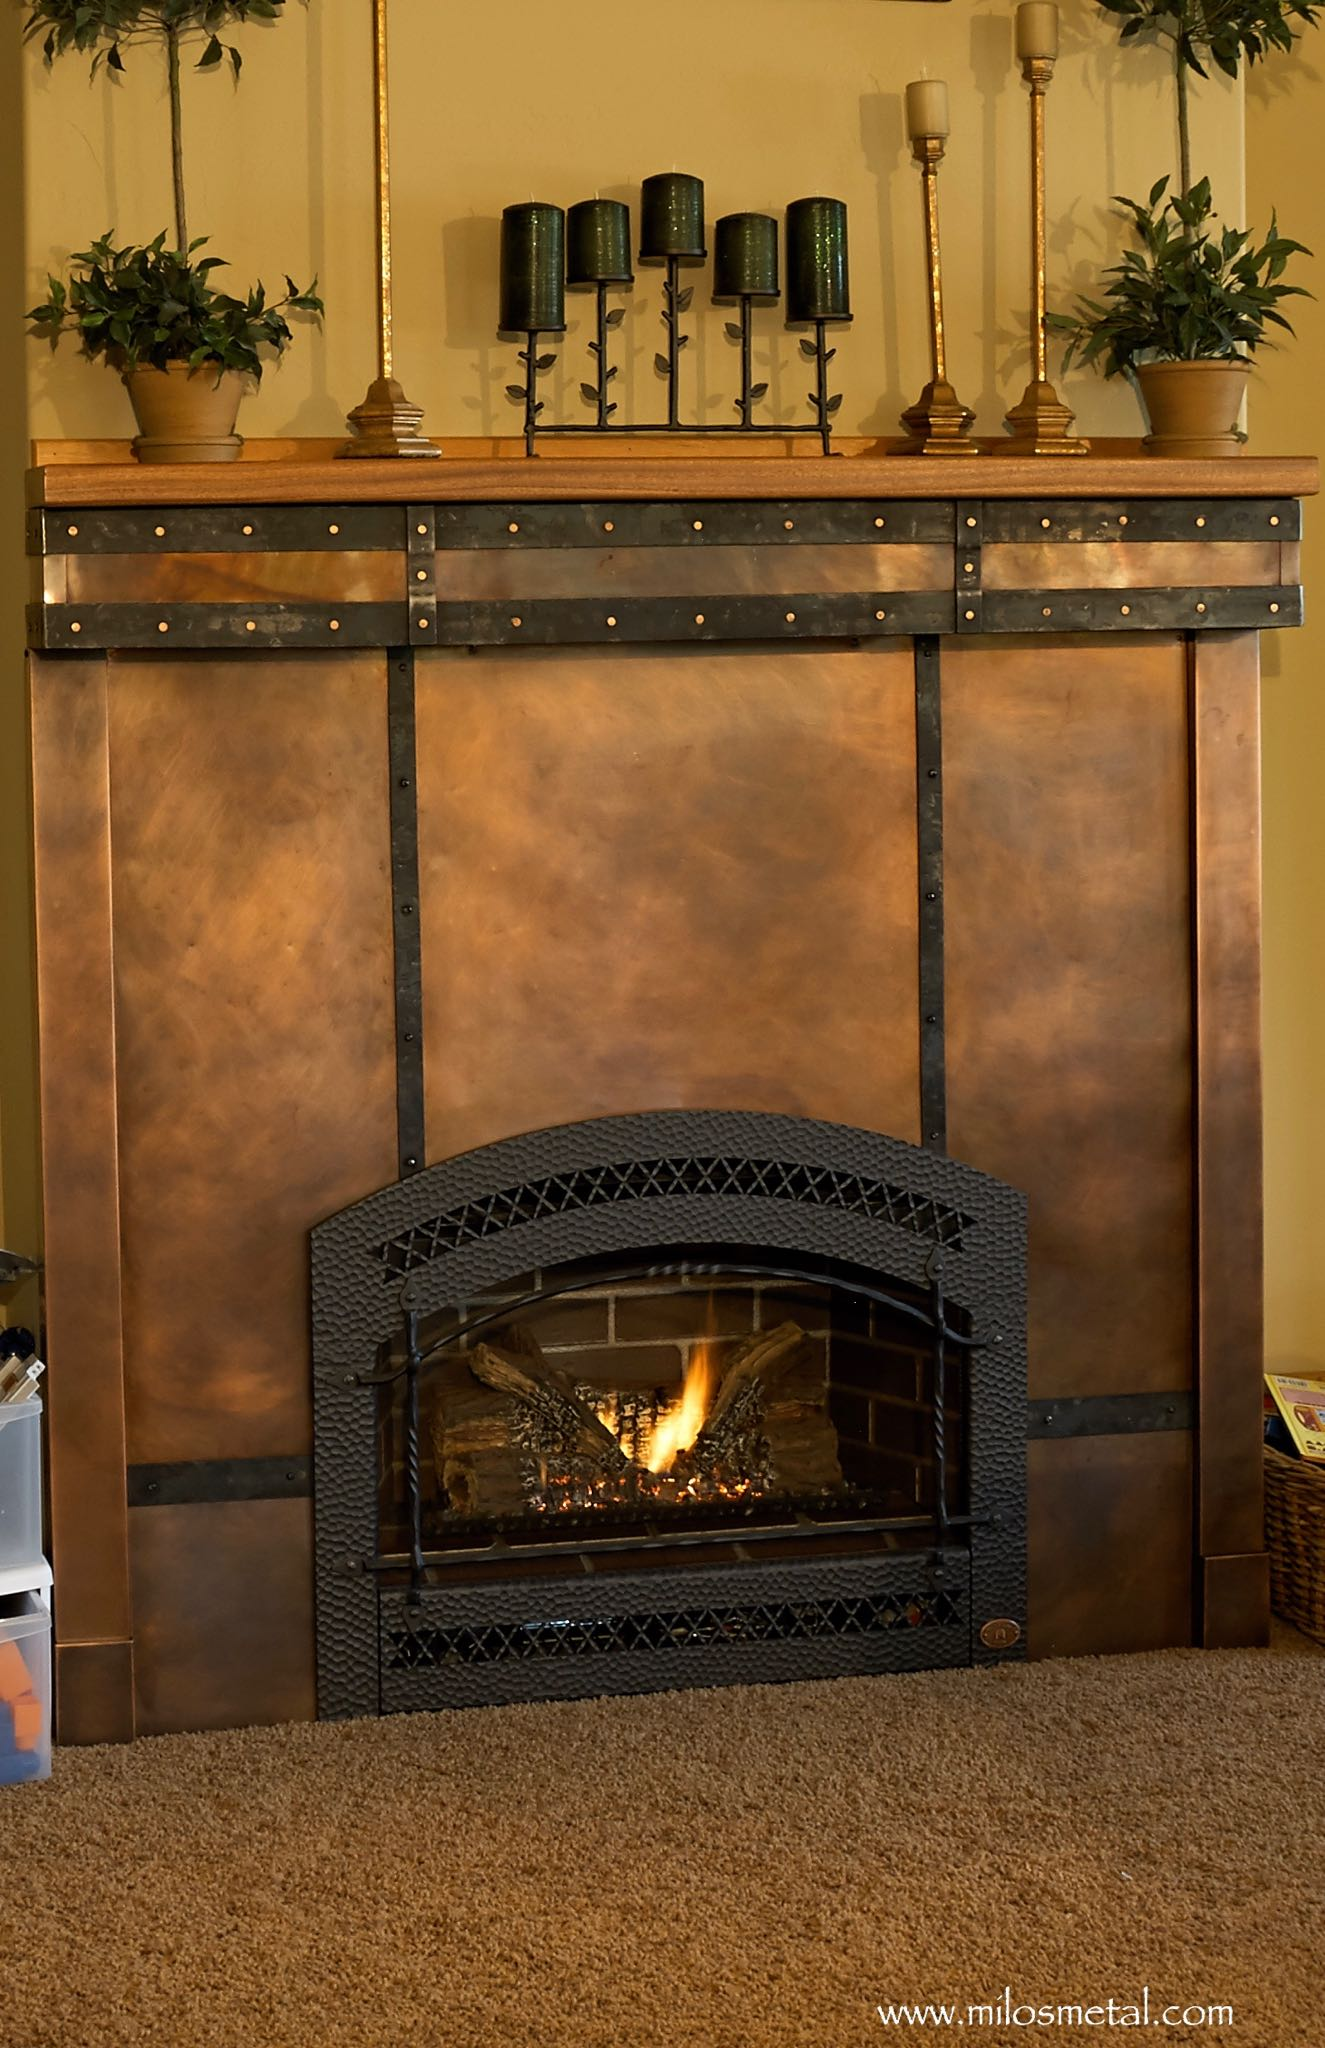 Fireplace Copper | Milo's Art Metal